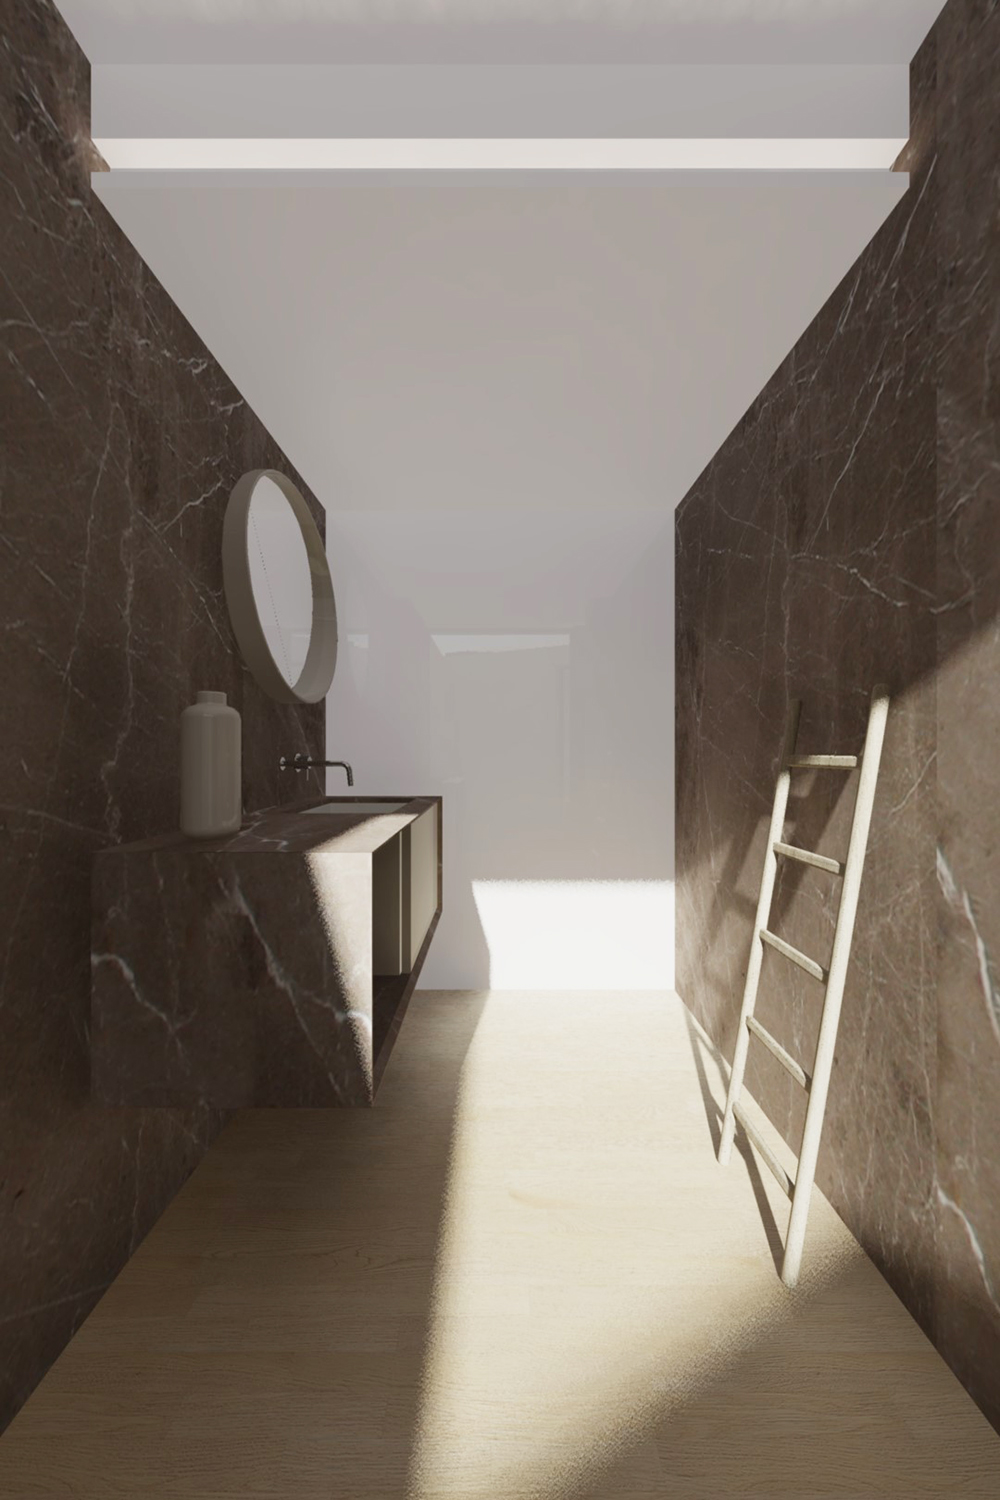 Bathroom Raulino Silva Architect